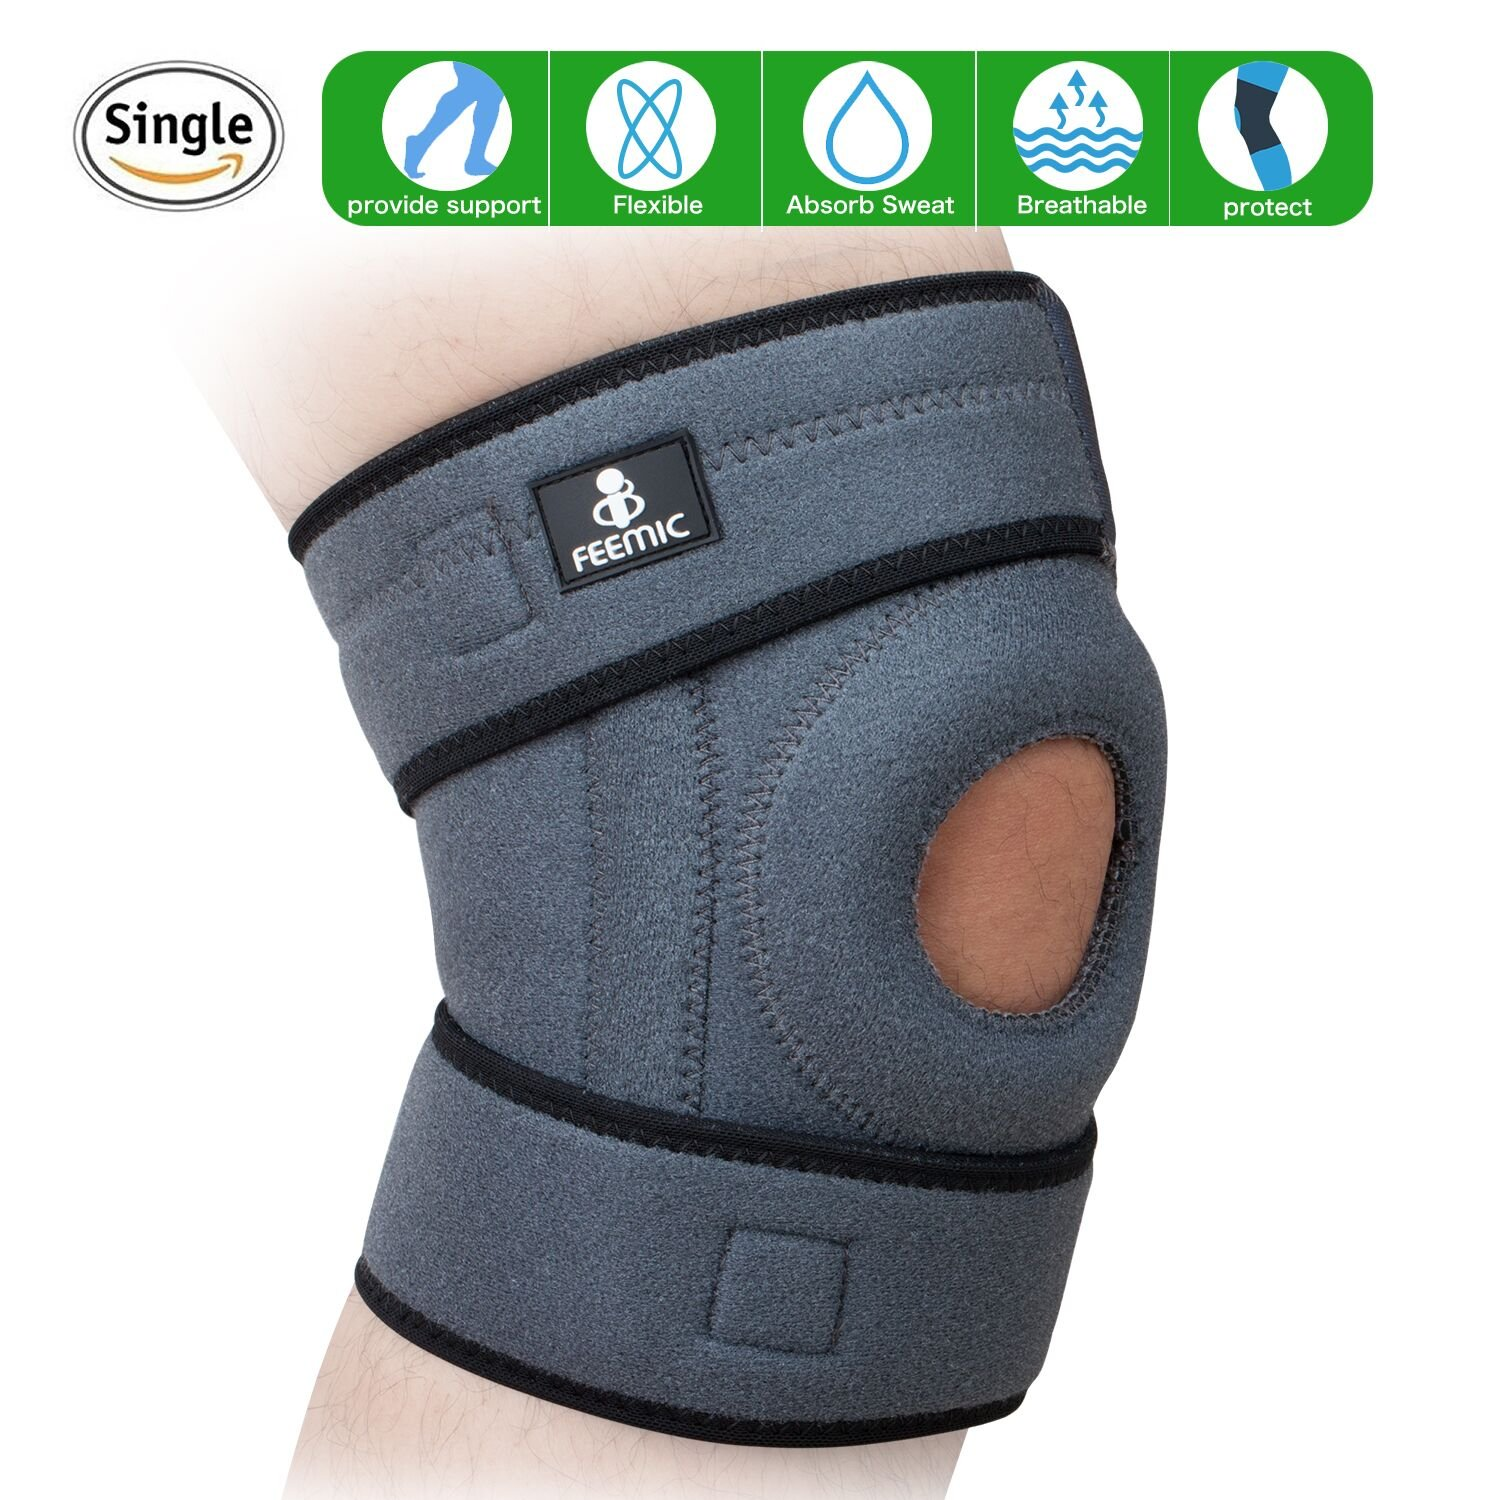 Knee Brace Support with Adjustable Strapping Non-Slip Breathable Sleeve. Meniscus Tear Support, Open-Patella Stabilizer Knee Brace for Running, Basketball,Sports, Arthritis and Injury Recovery